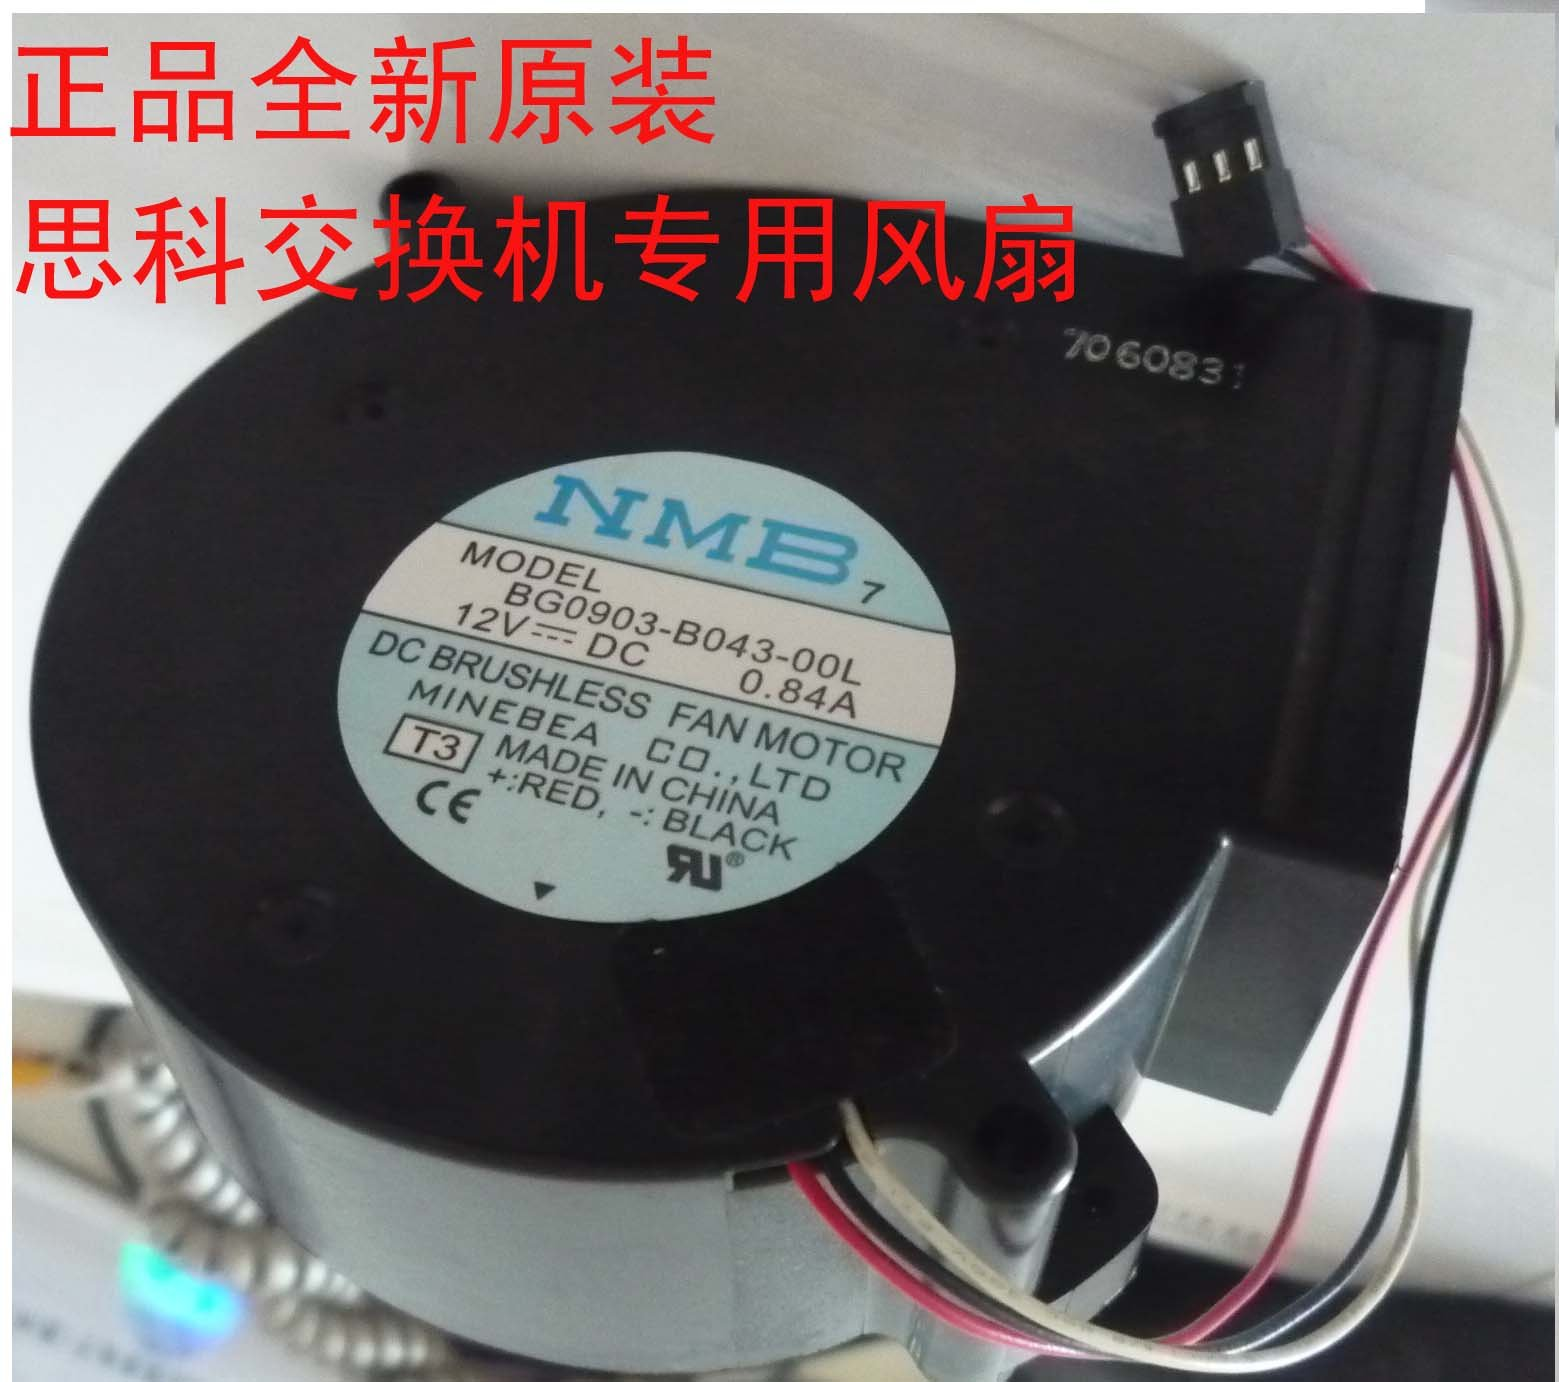 NMB New Original NMB 9CM BG0903-B043-00L 9733 12V 0.84A BG0903-B043-00L WS-C2970G-24TS blower fan nmb new and original fba09a12m 9025 9cm 12v 0 2a chassis silent cooling fan 90 90 25mm